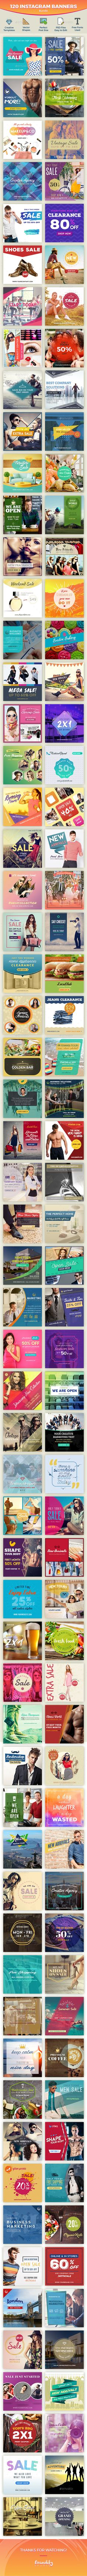 Instagram Banners Bundle PSD Template • Download ➝ https://graphicriver.net/item/instagram-banners-bundle/15221461?ref=pxcr